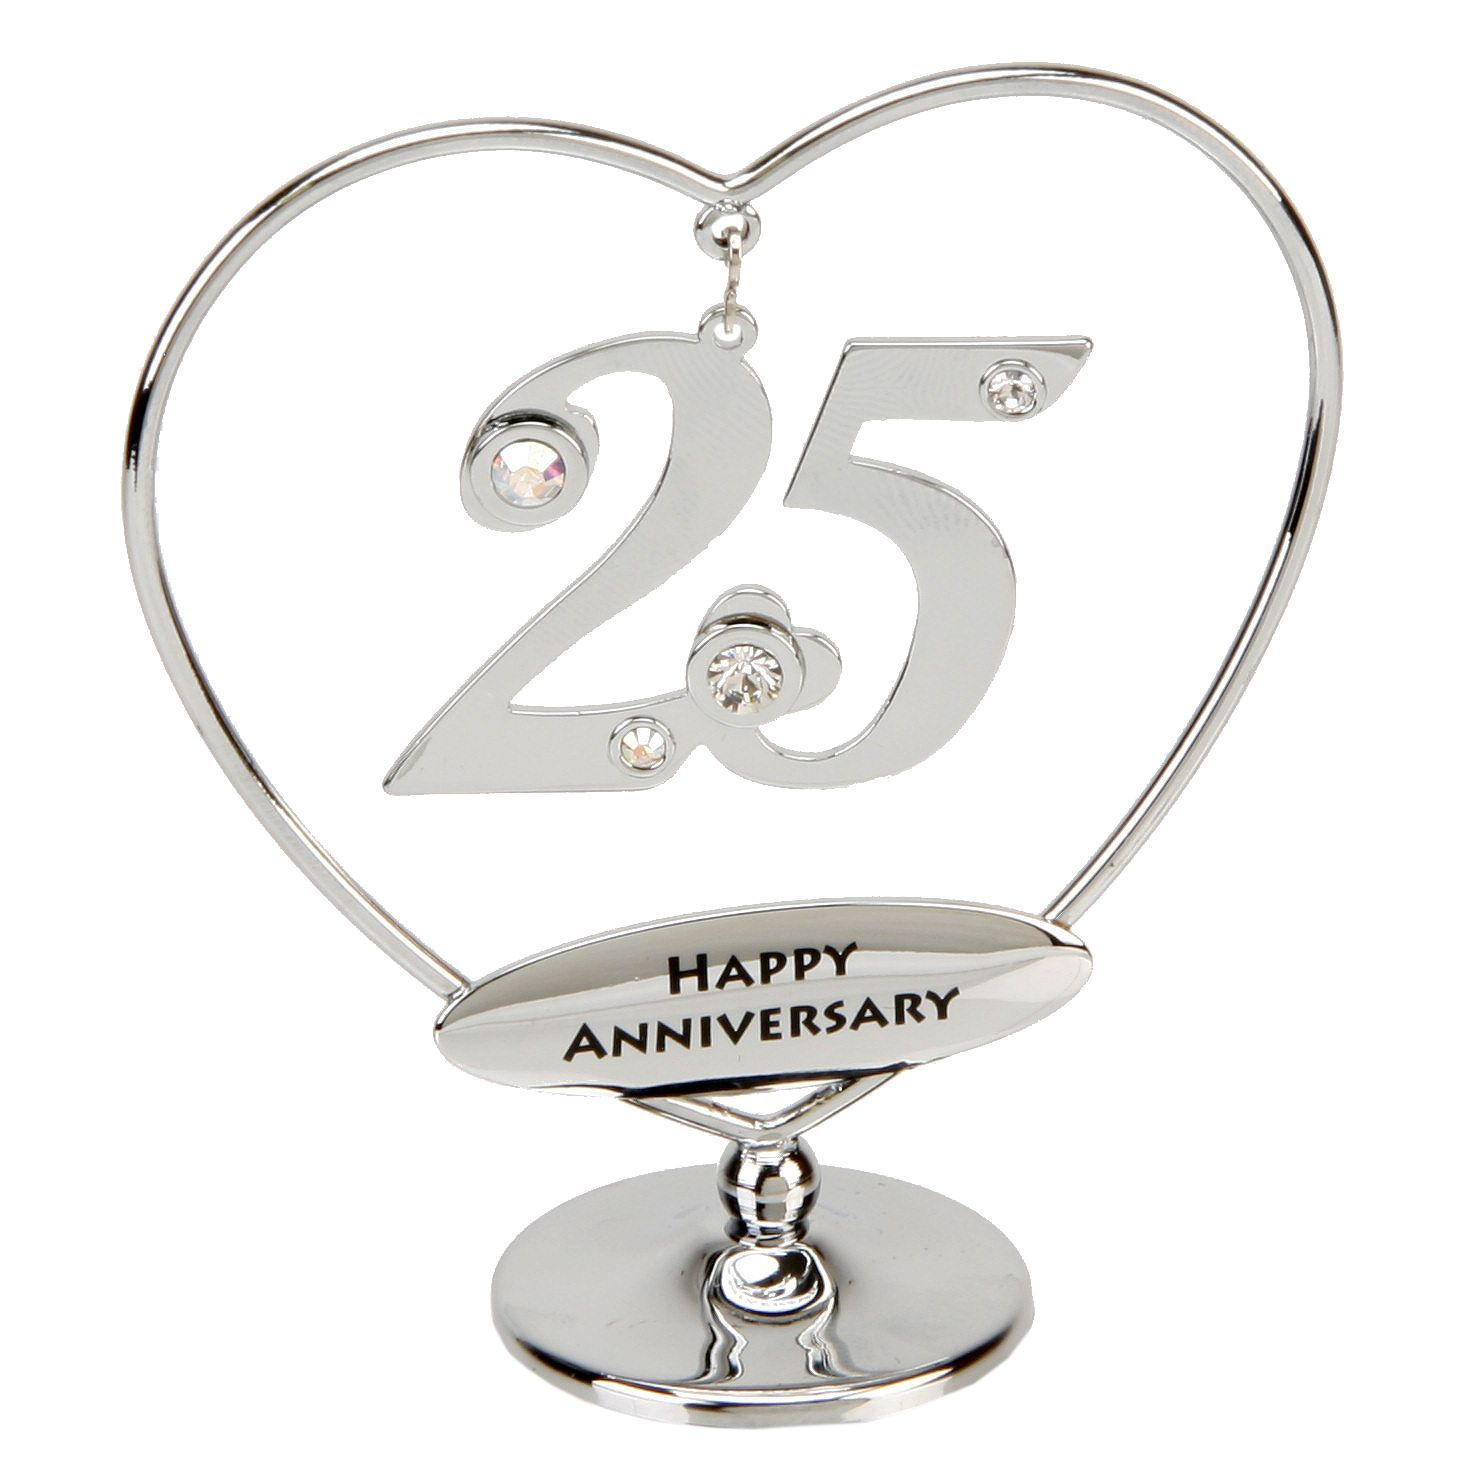 What Is The 25th Wedding Anniversary Gift: 25th Anniversary Cake Topper